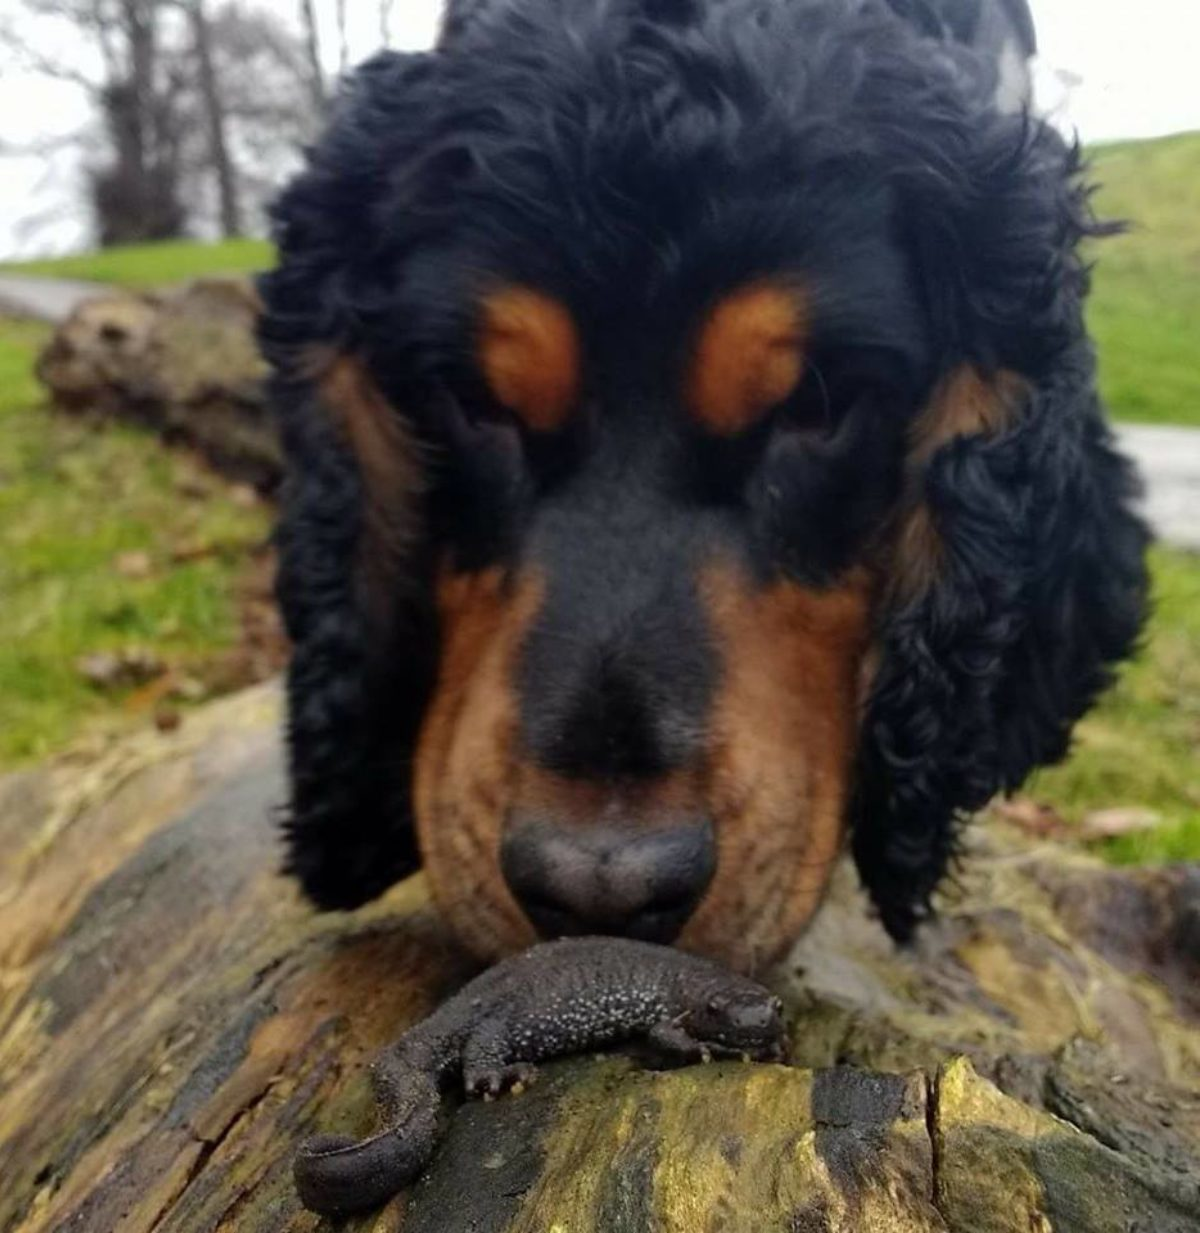 great crested newt detection dog